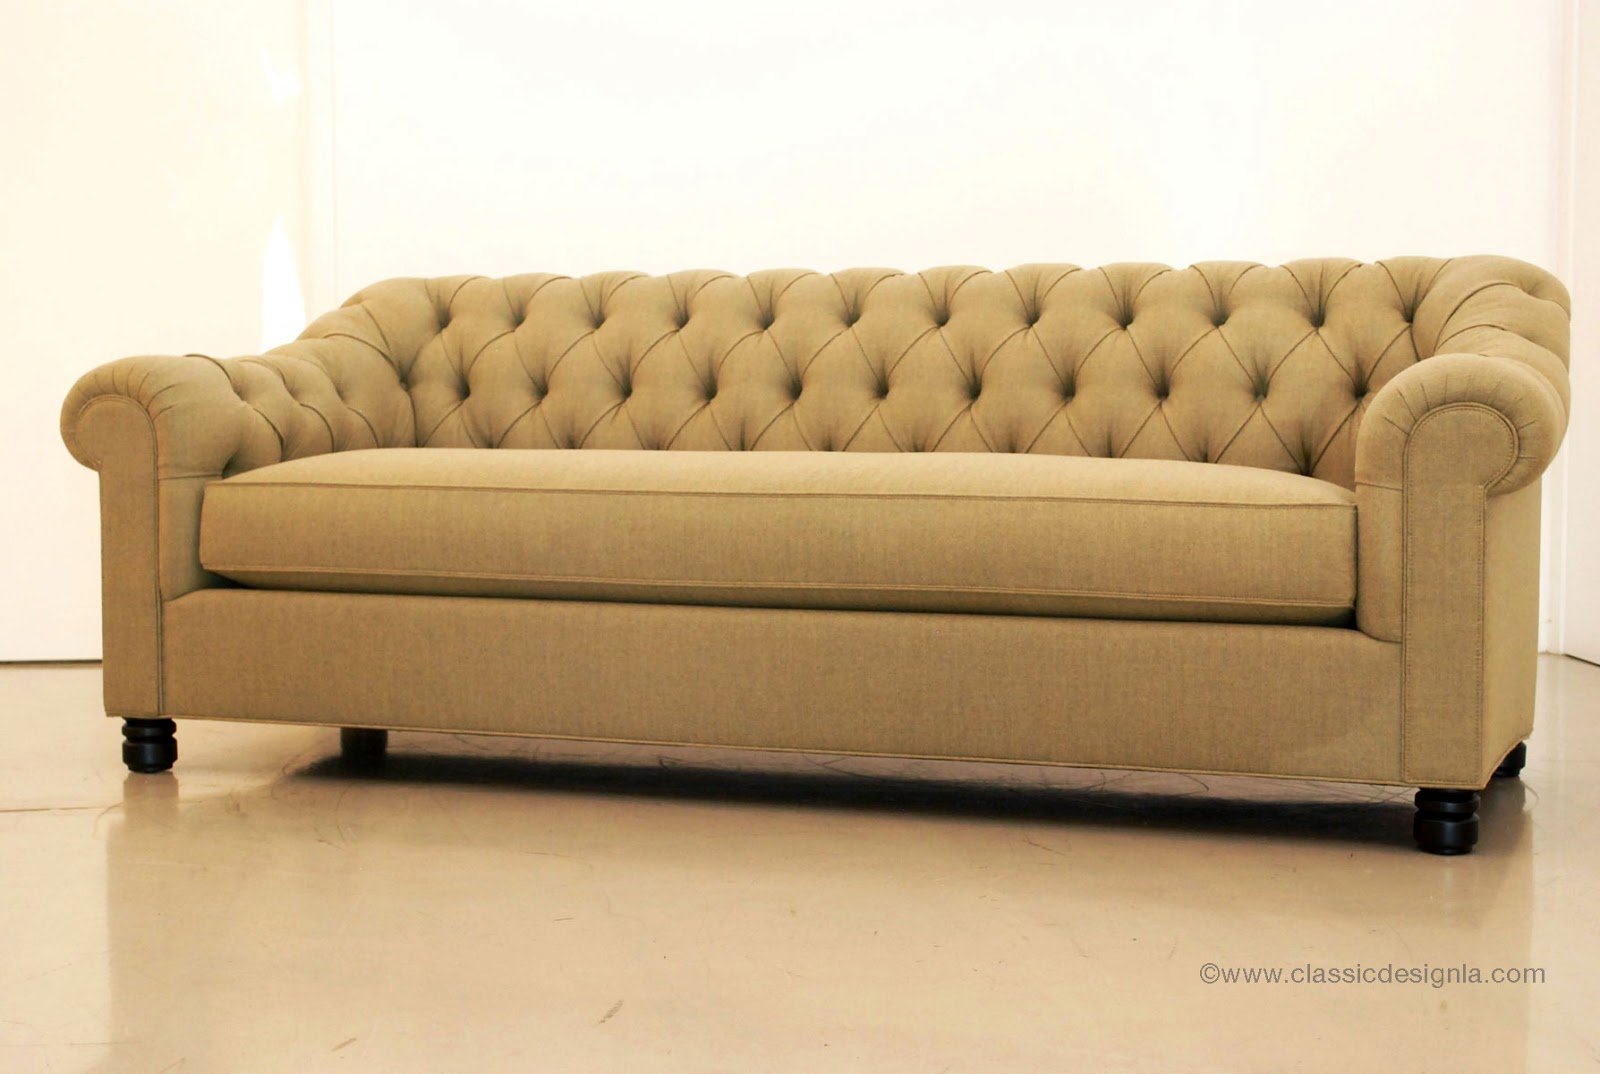 Custom Sectional Sofa Design With Reversible Chaise Lounge Made Modern Contemporary